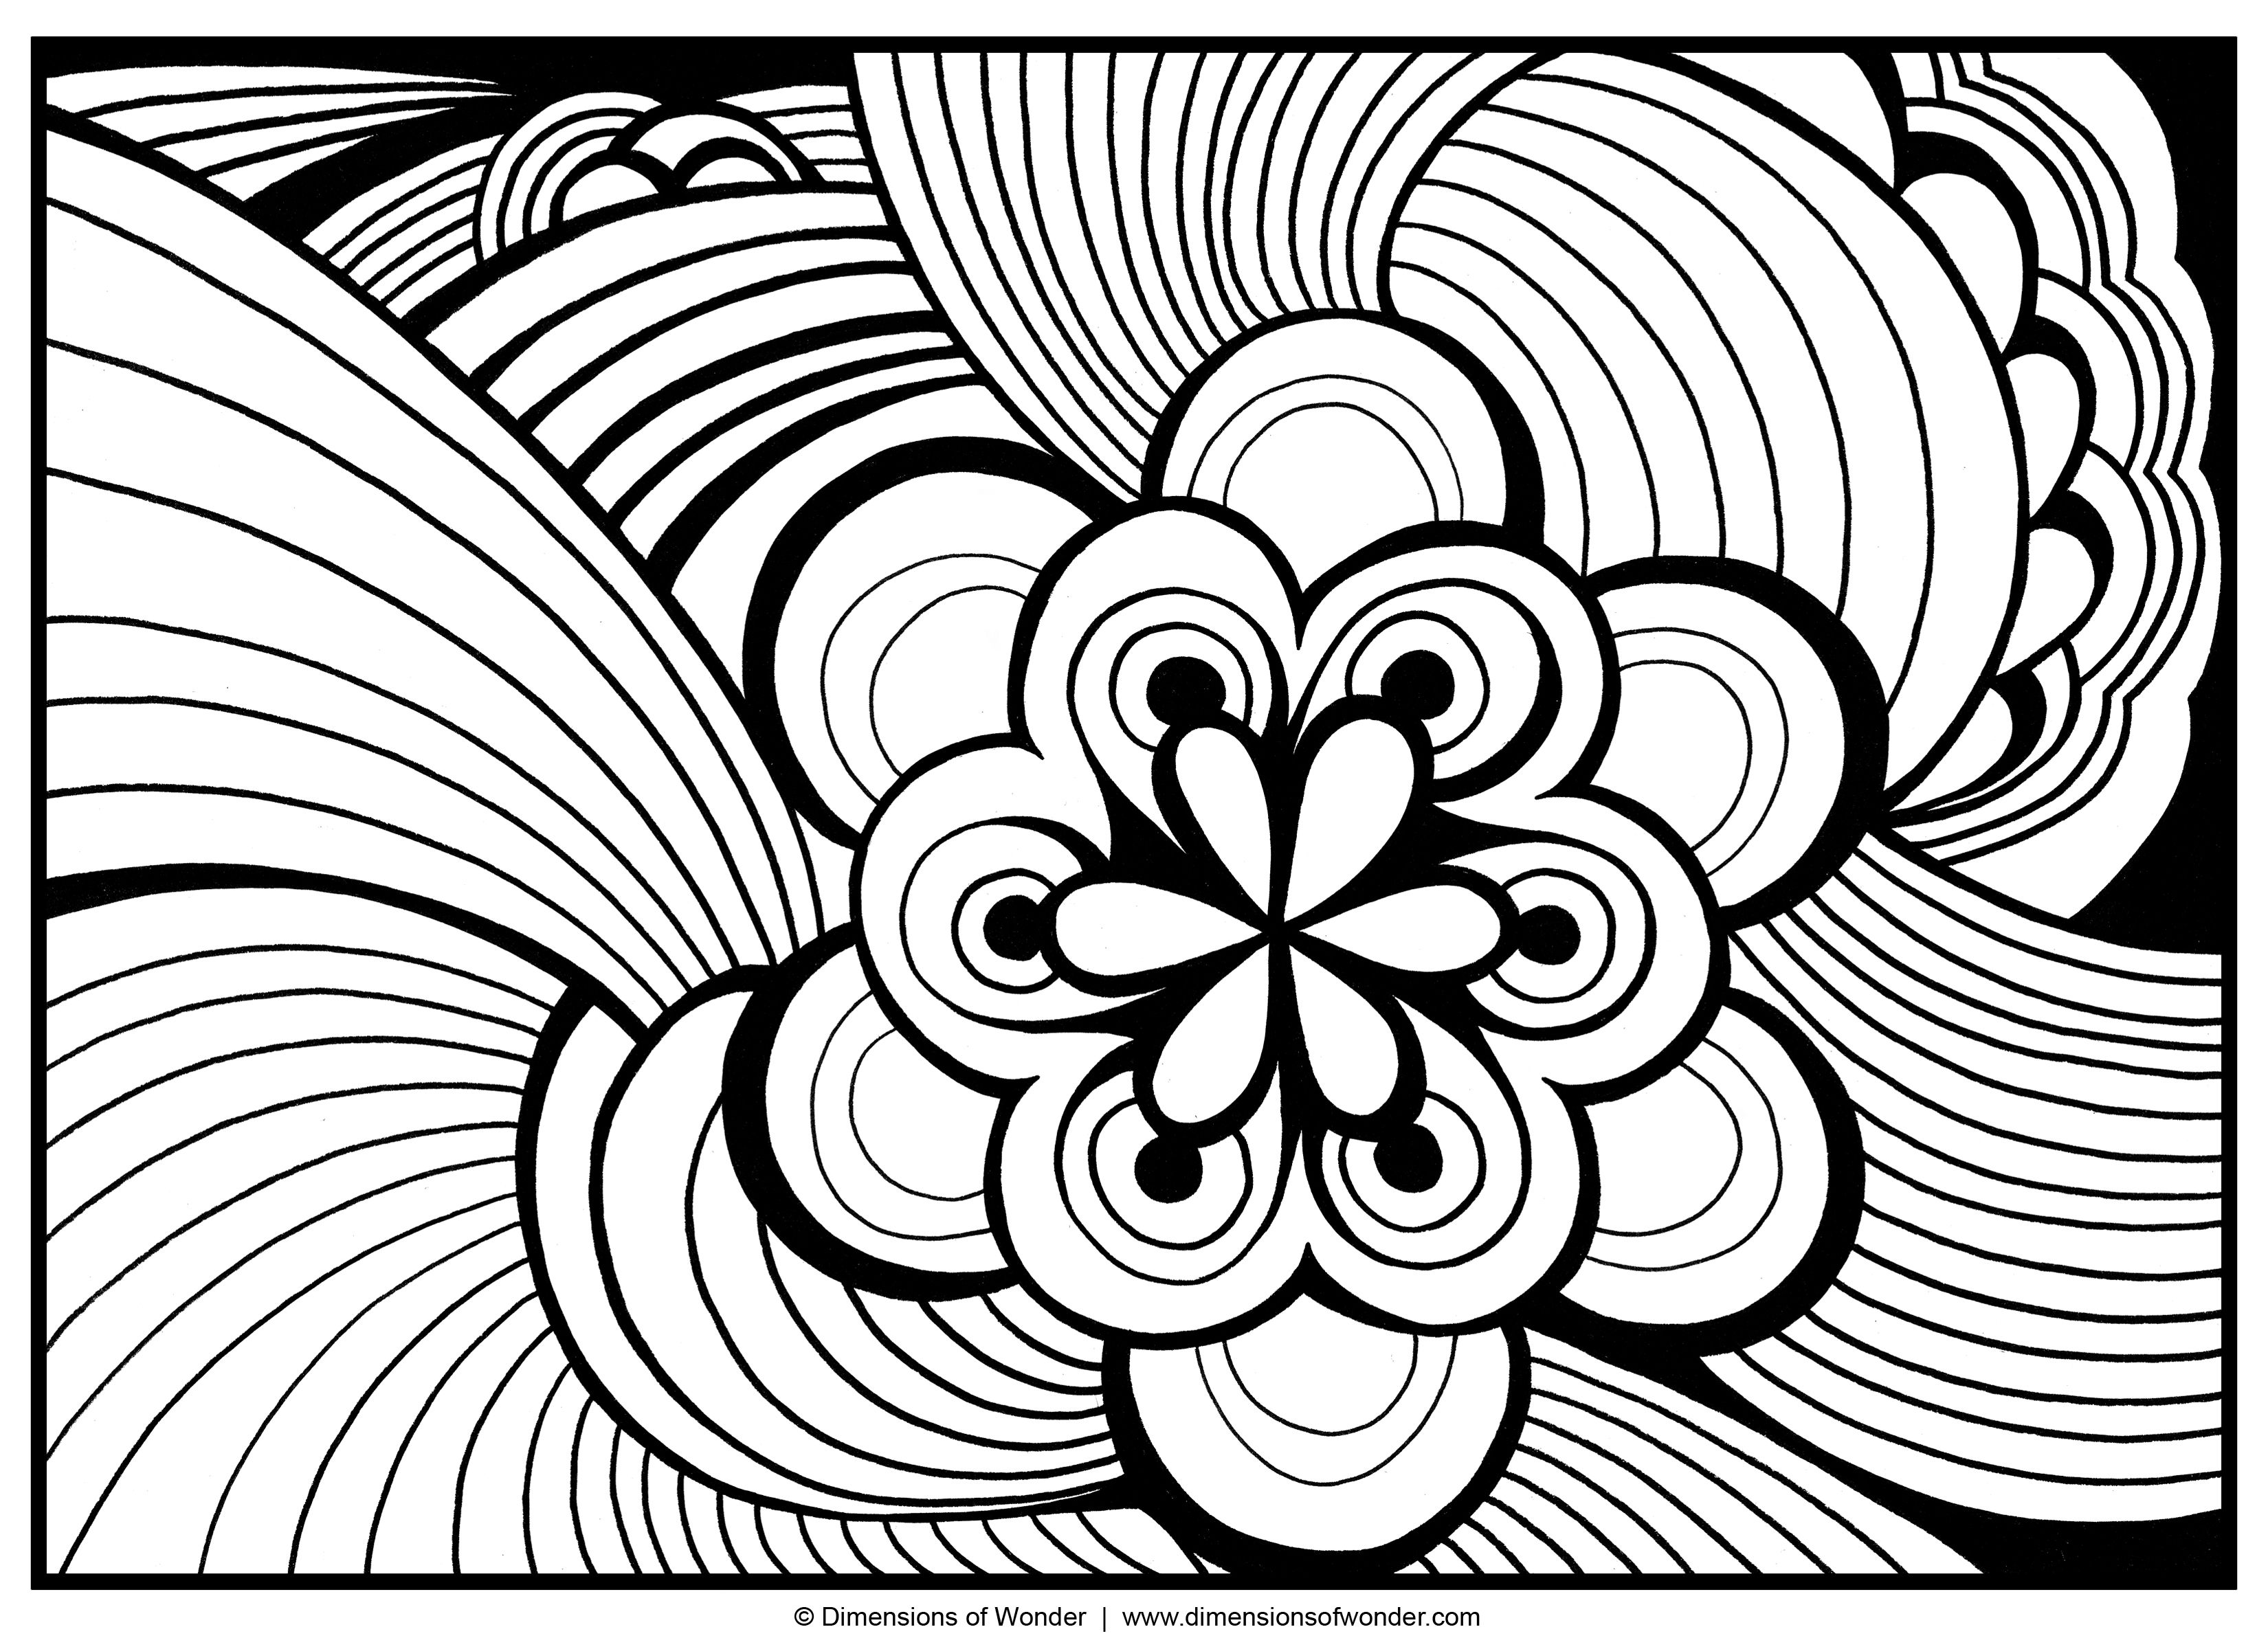 abstract coloring pages - Free Large Images | Adult and Children\'s ...